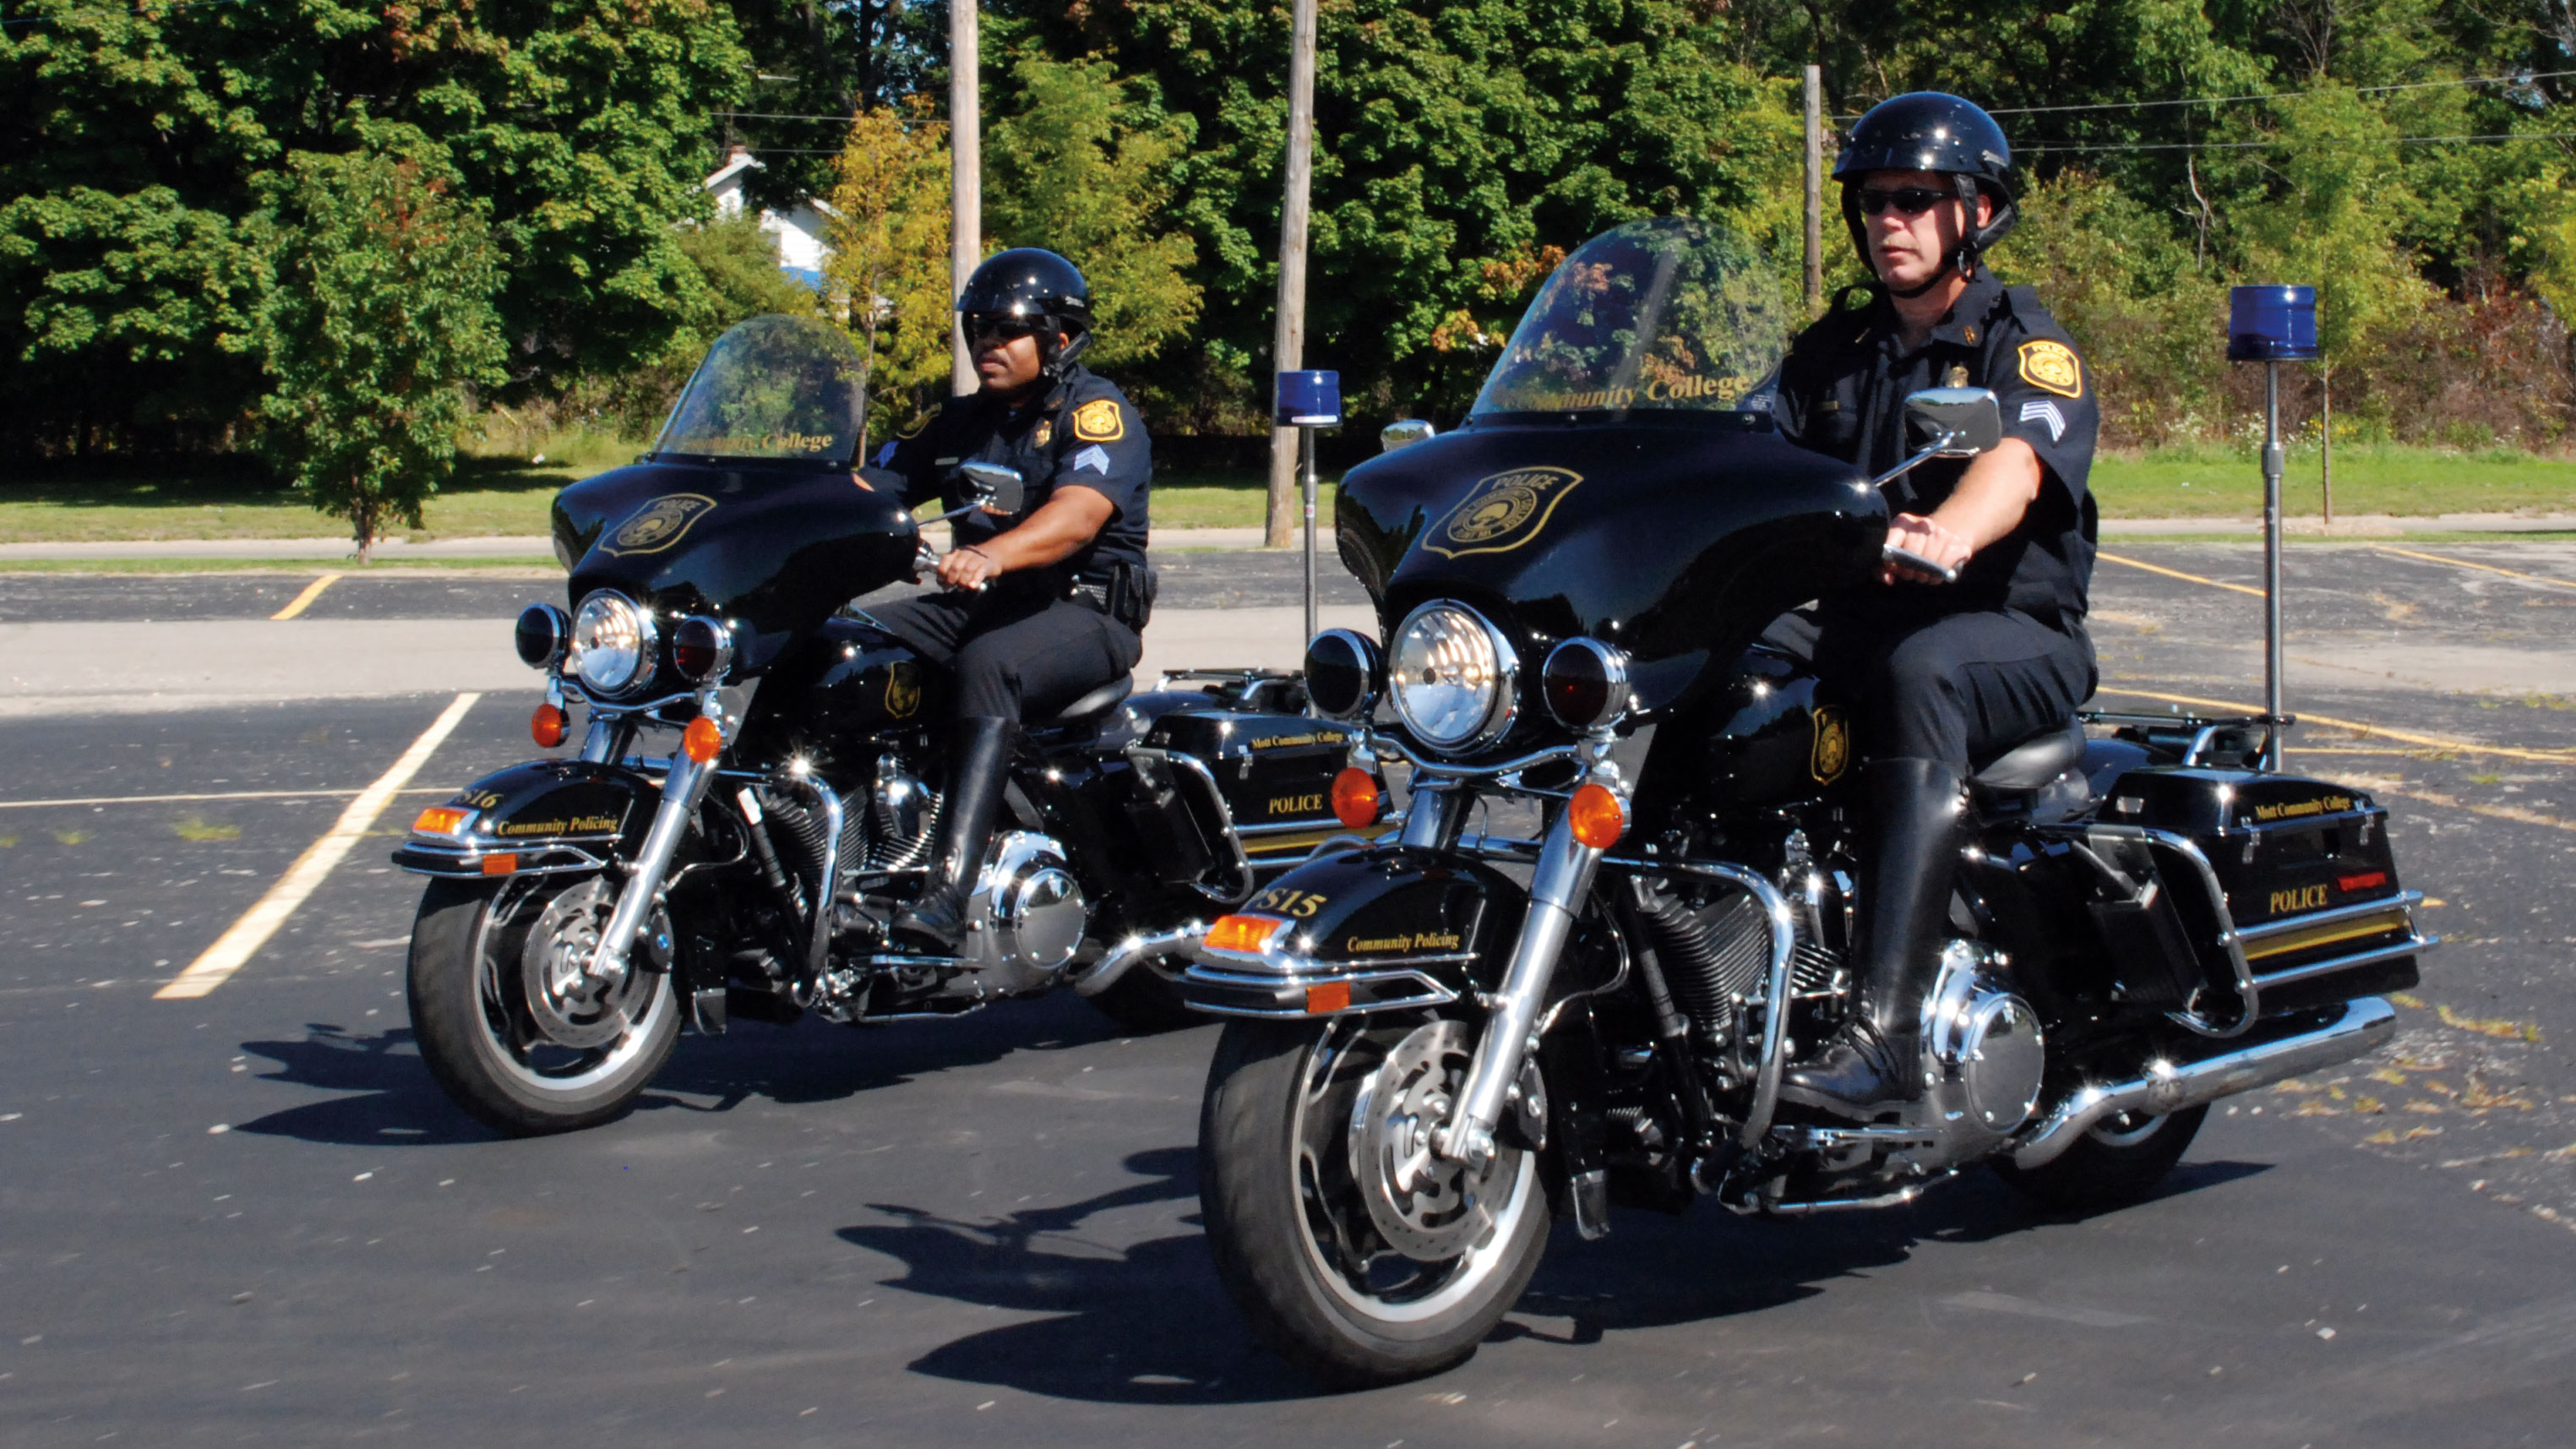 Department of Public Safety Motorcycle Patrol